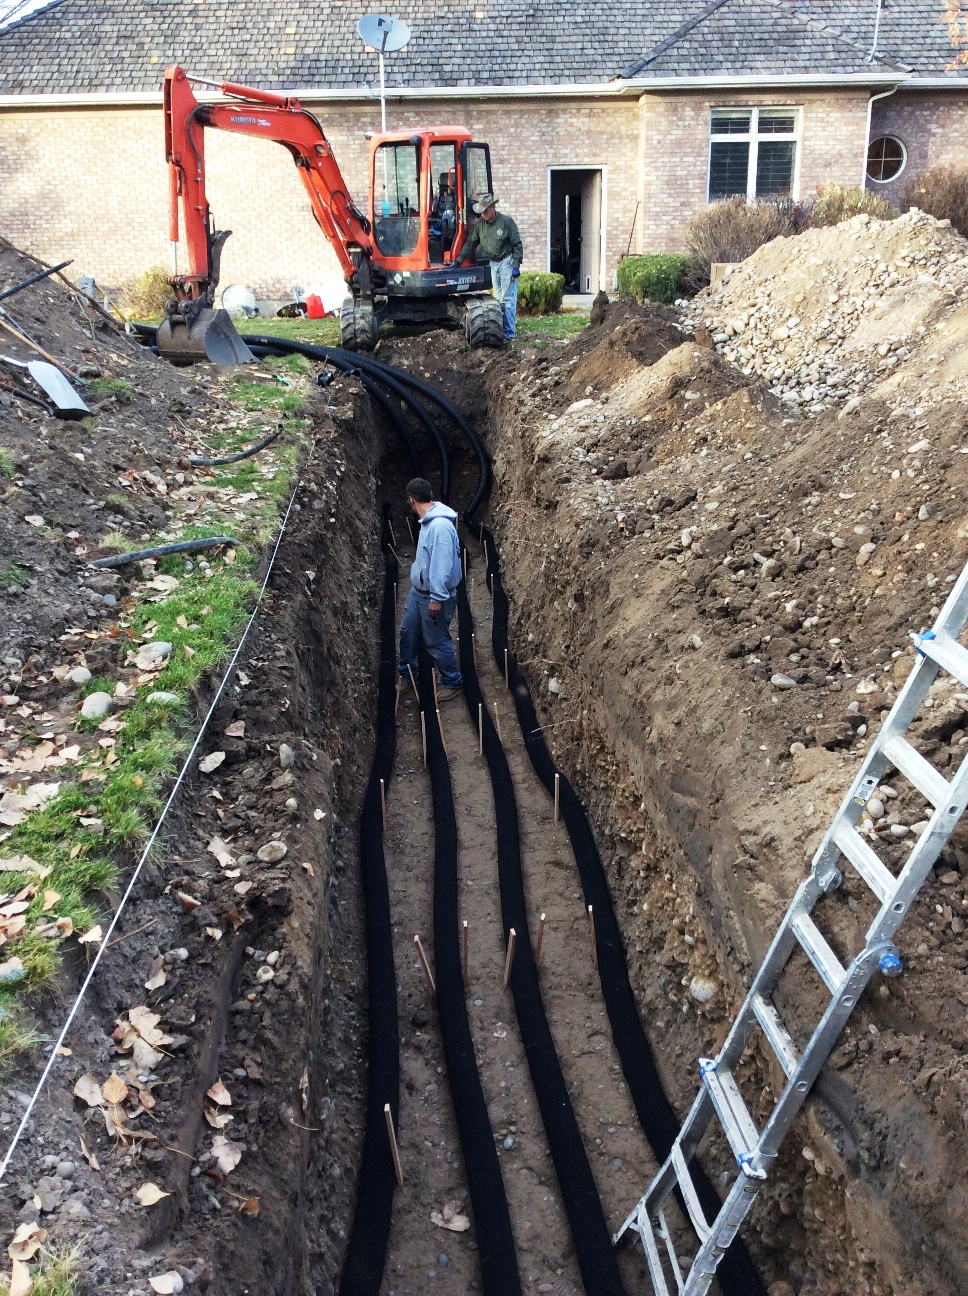 03 Installing corrugated pipes 7' deep